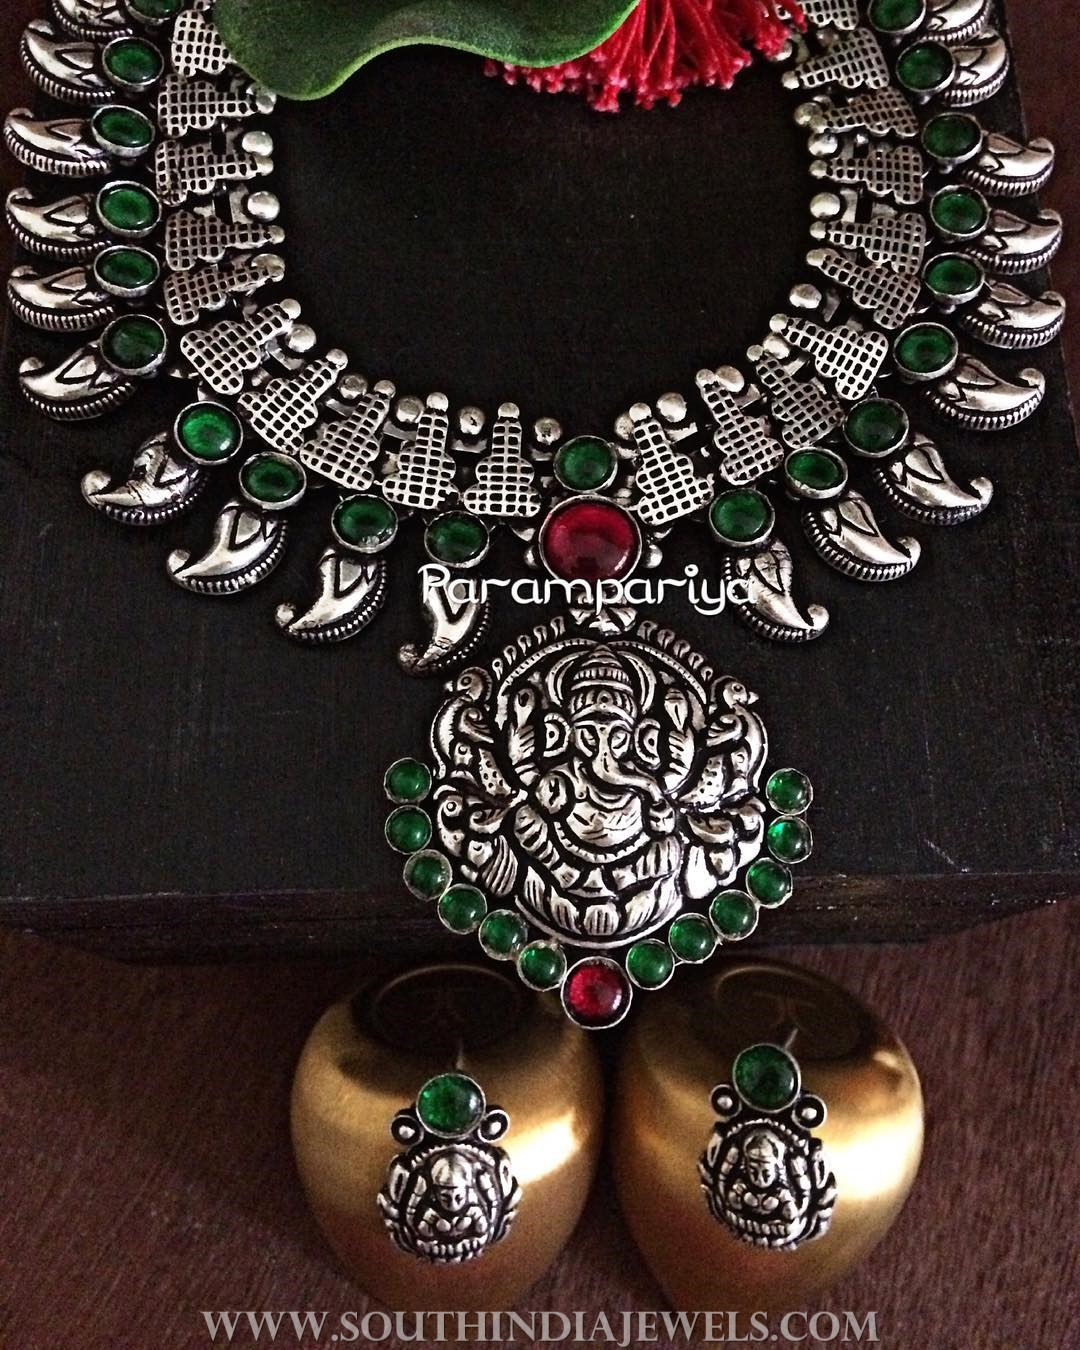 Silver Temple Necklace From Parampariya